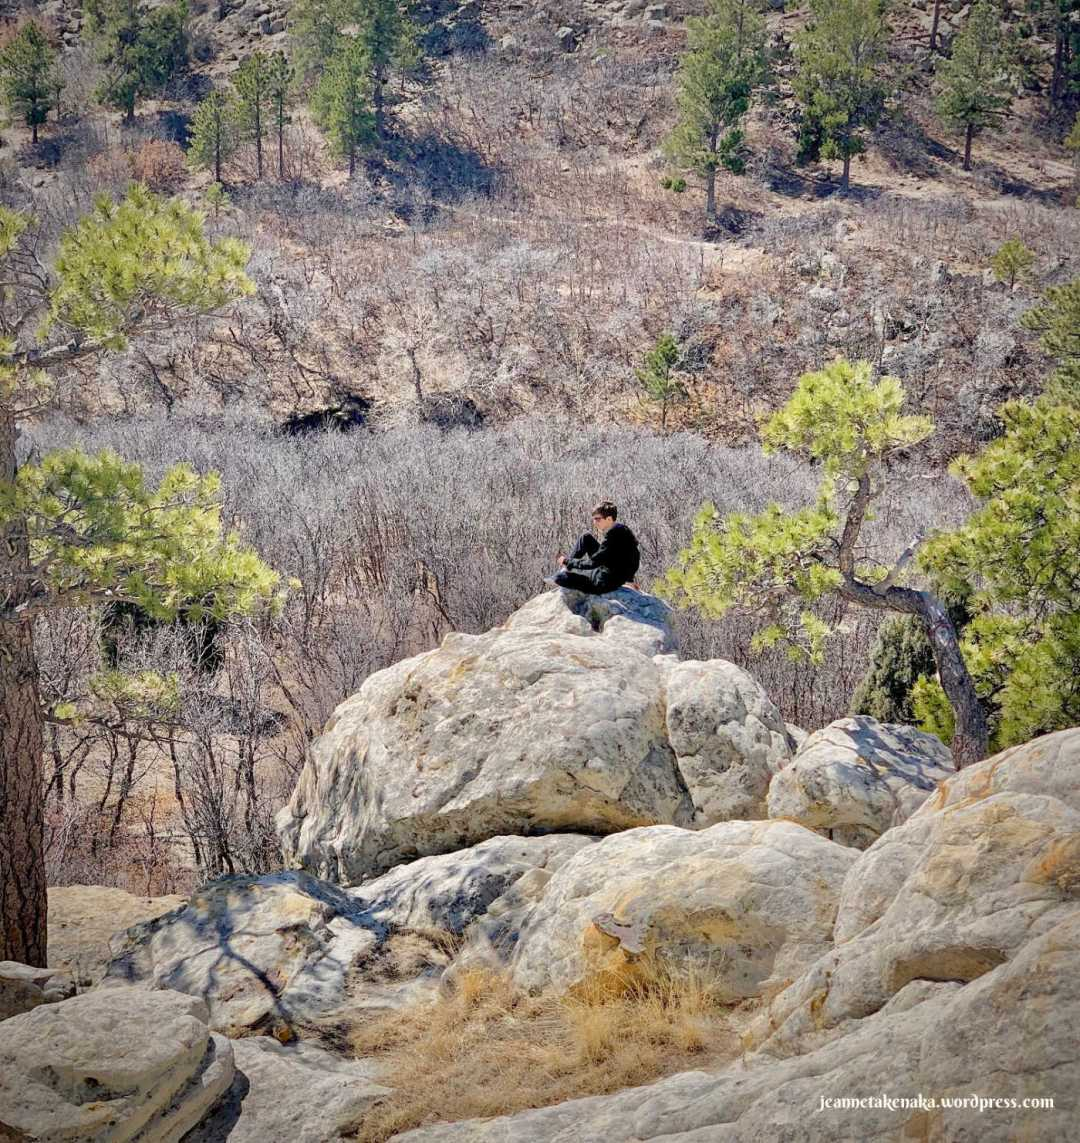 A teen boy sitting on the edge of a rocky overhang